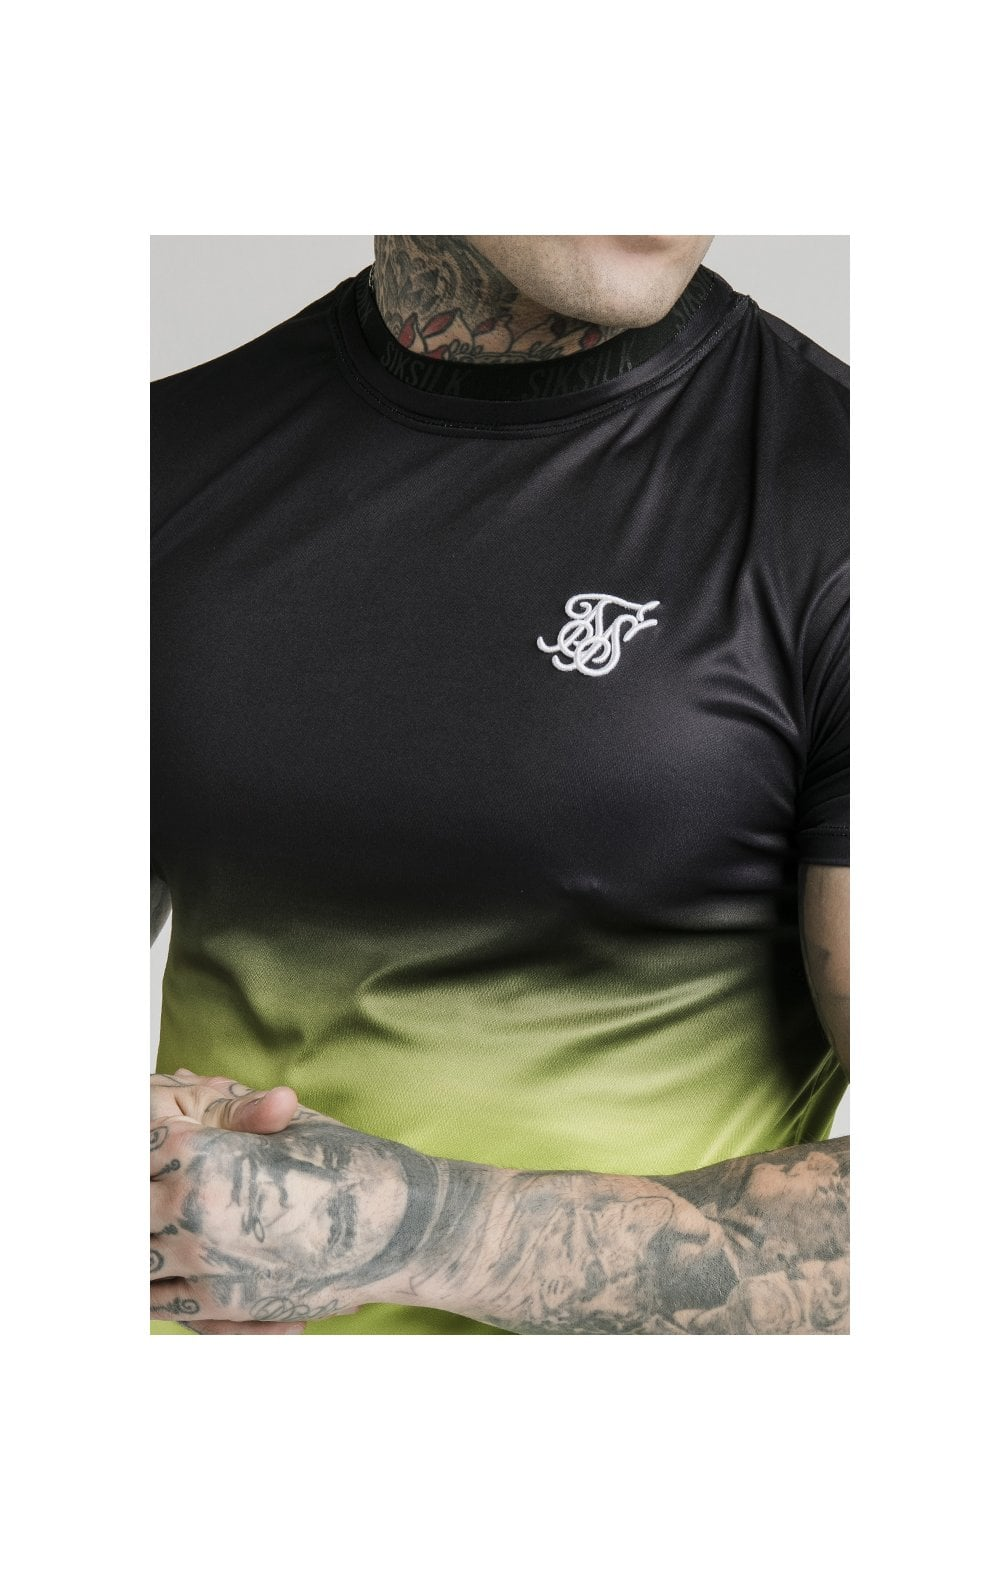 SikSilk S/S Tri Fade Tape Collar Tee - Black, Fluro & White (1)